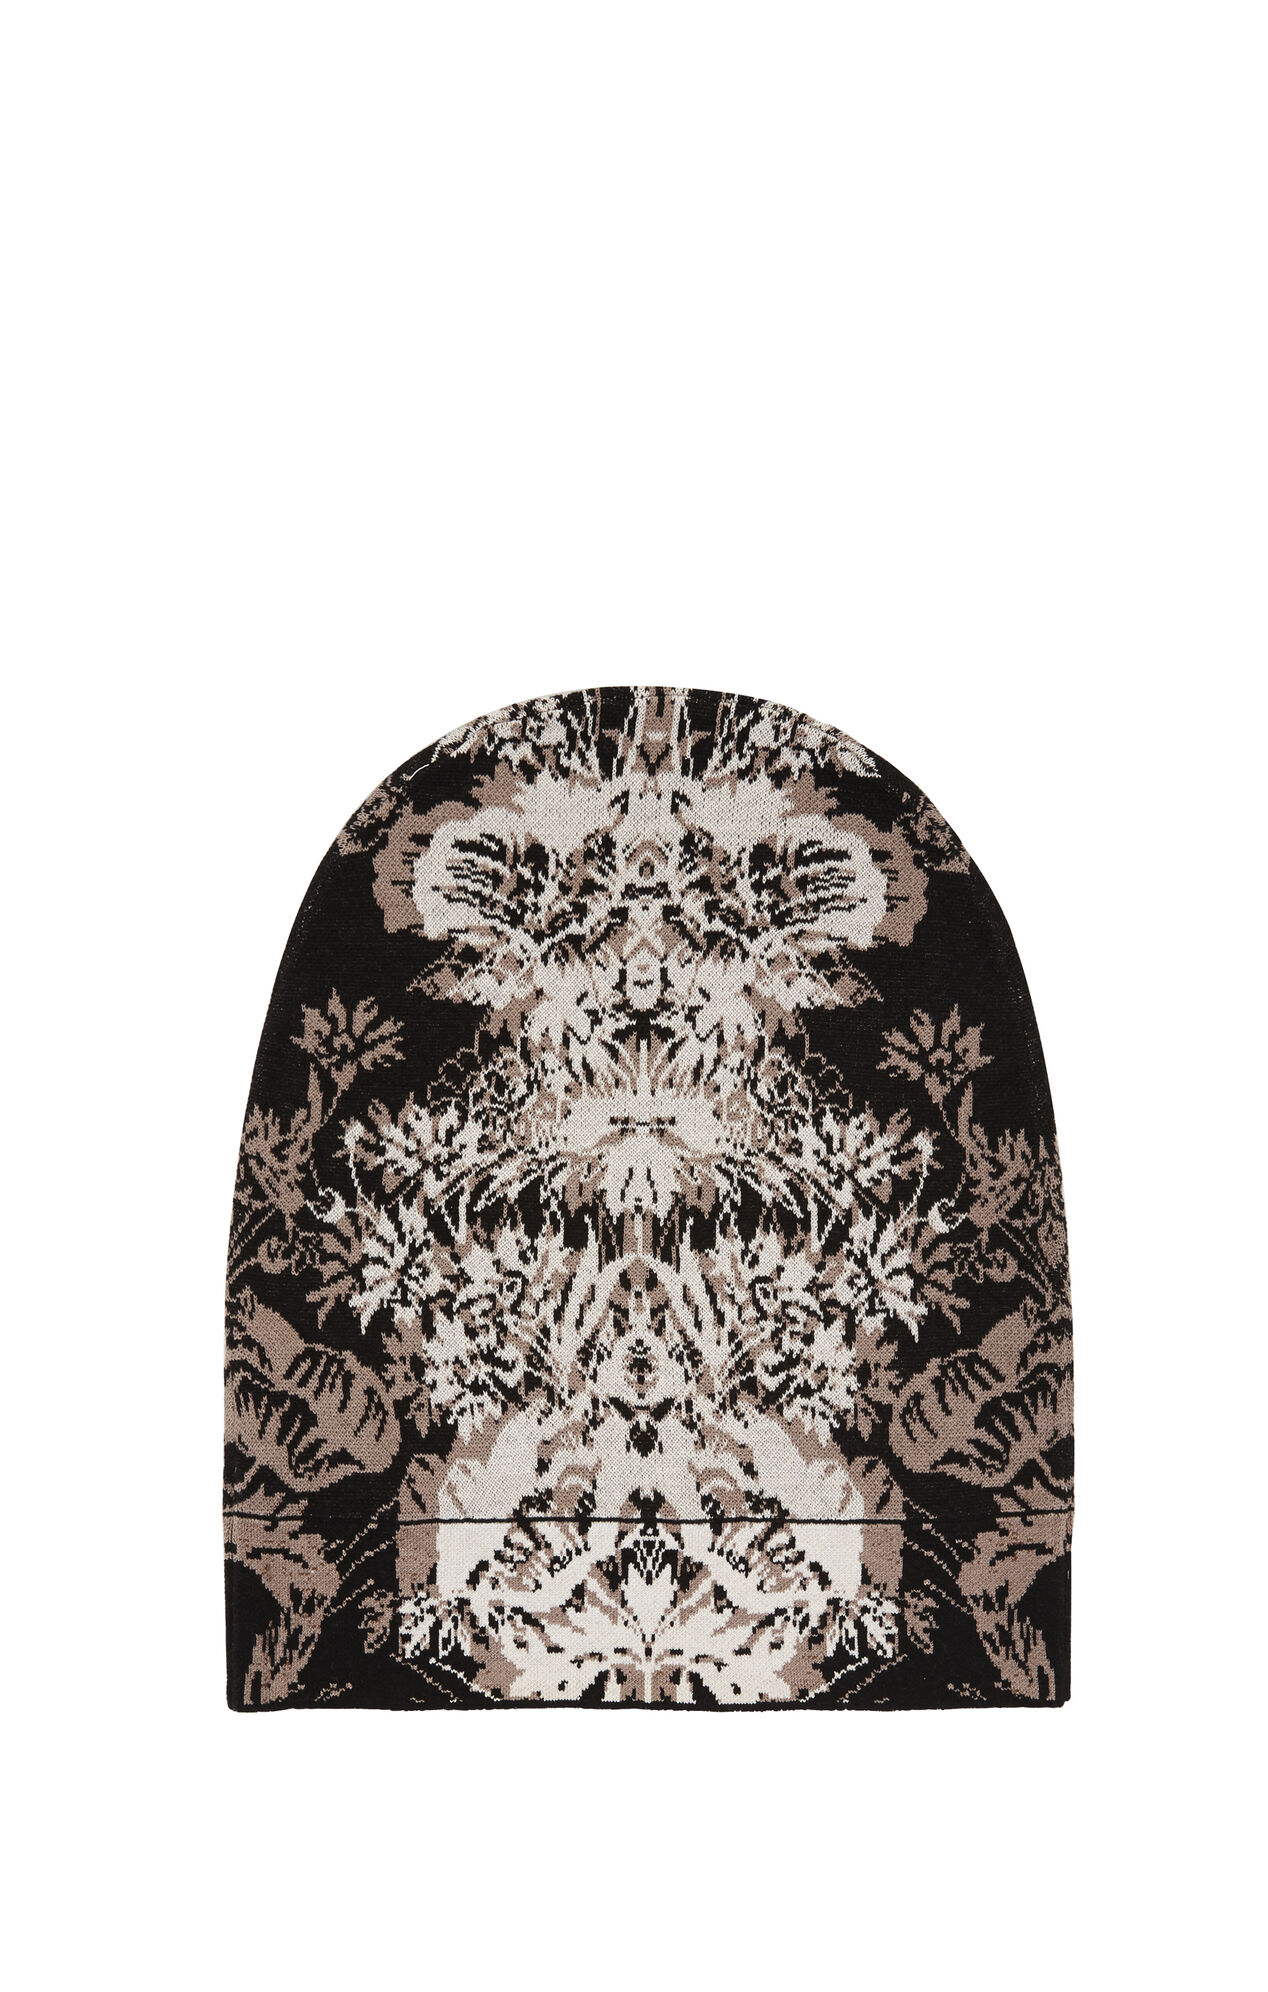 Steacy Etched Floral Jacquard Beanie